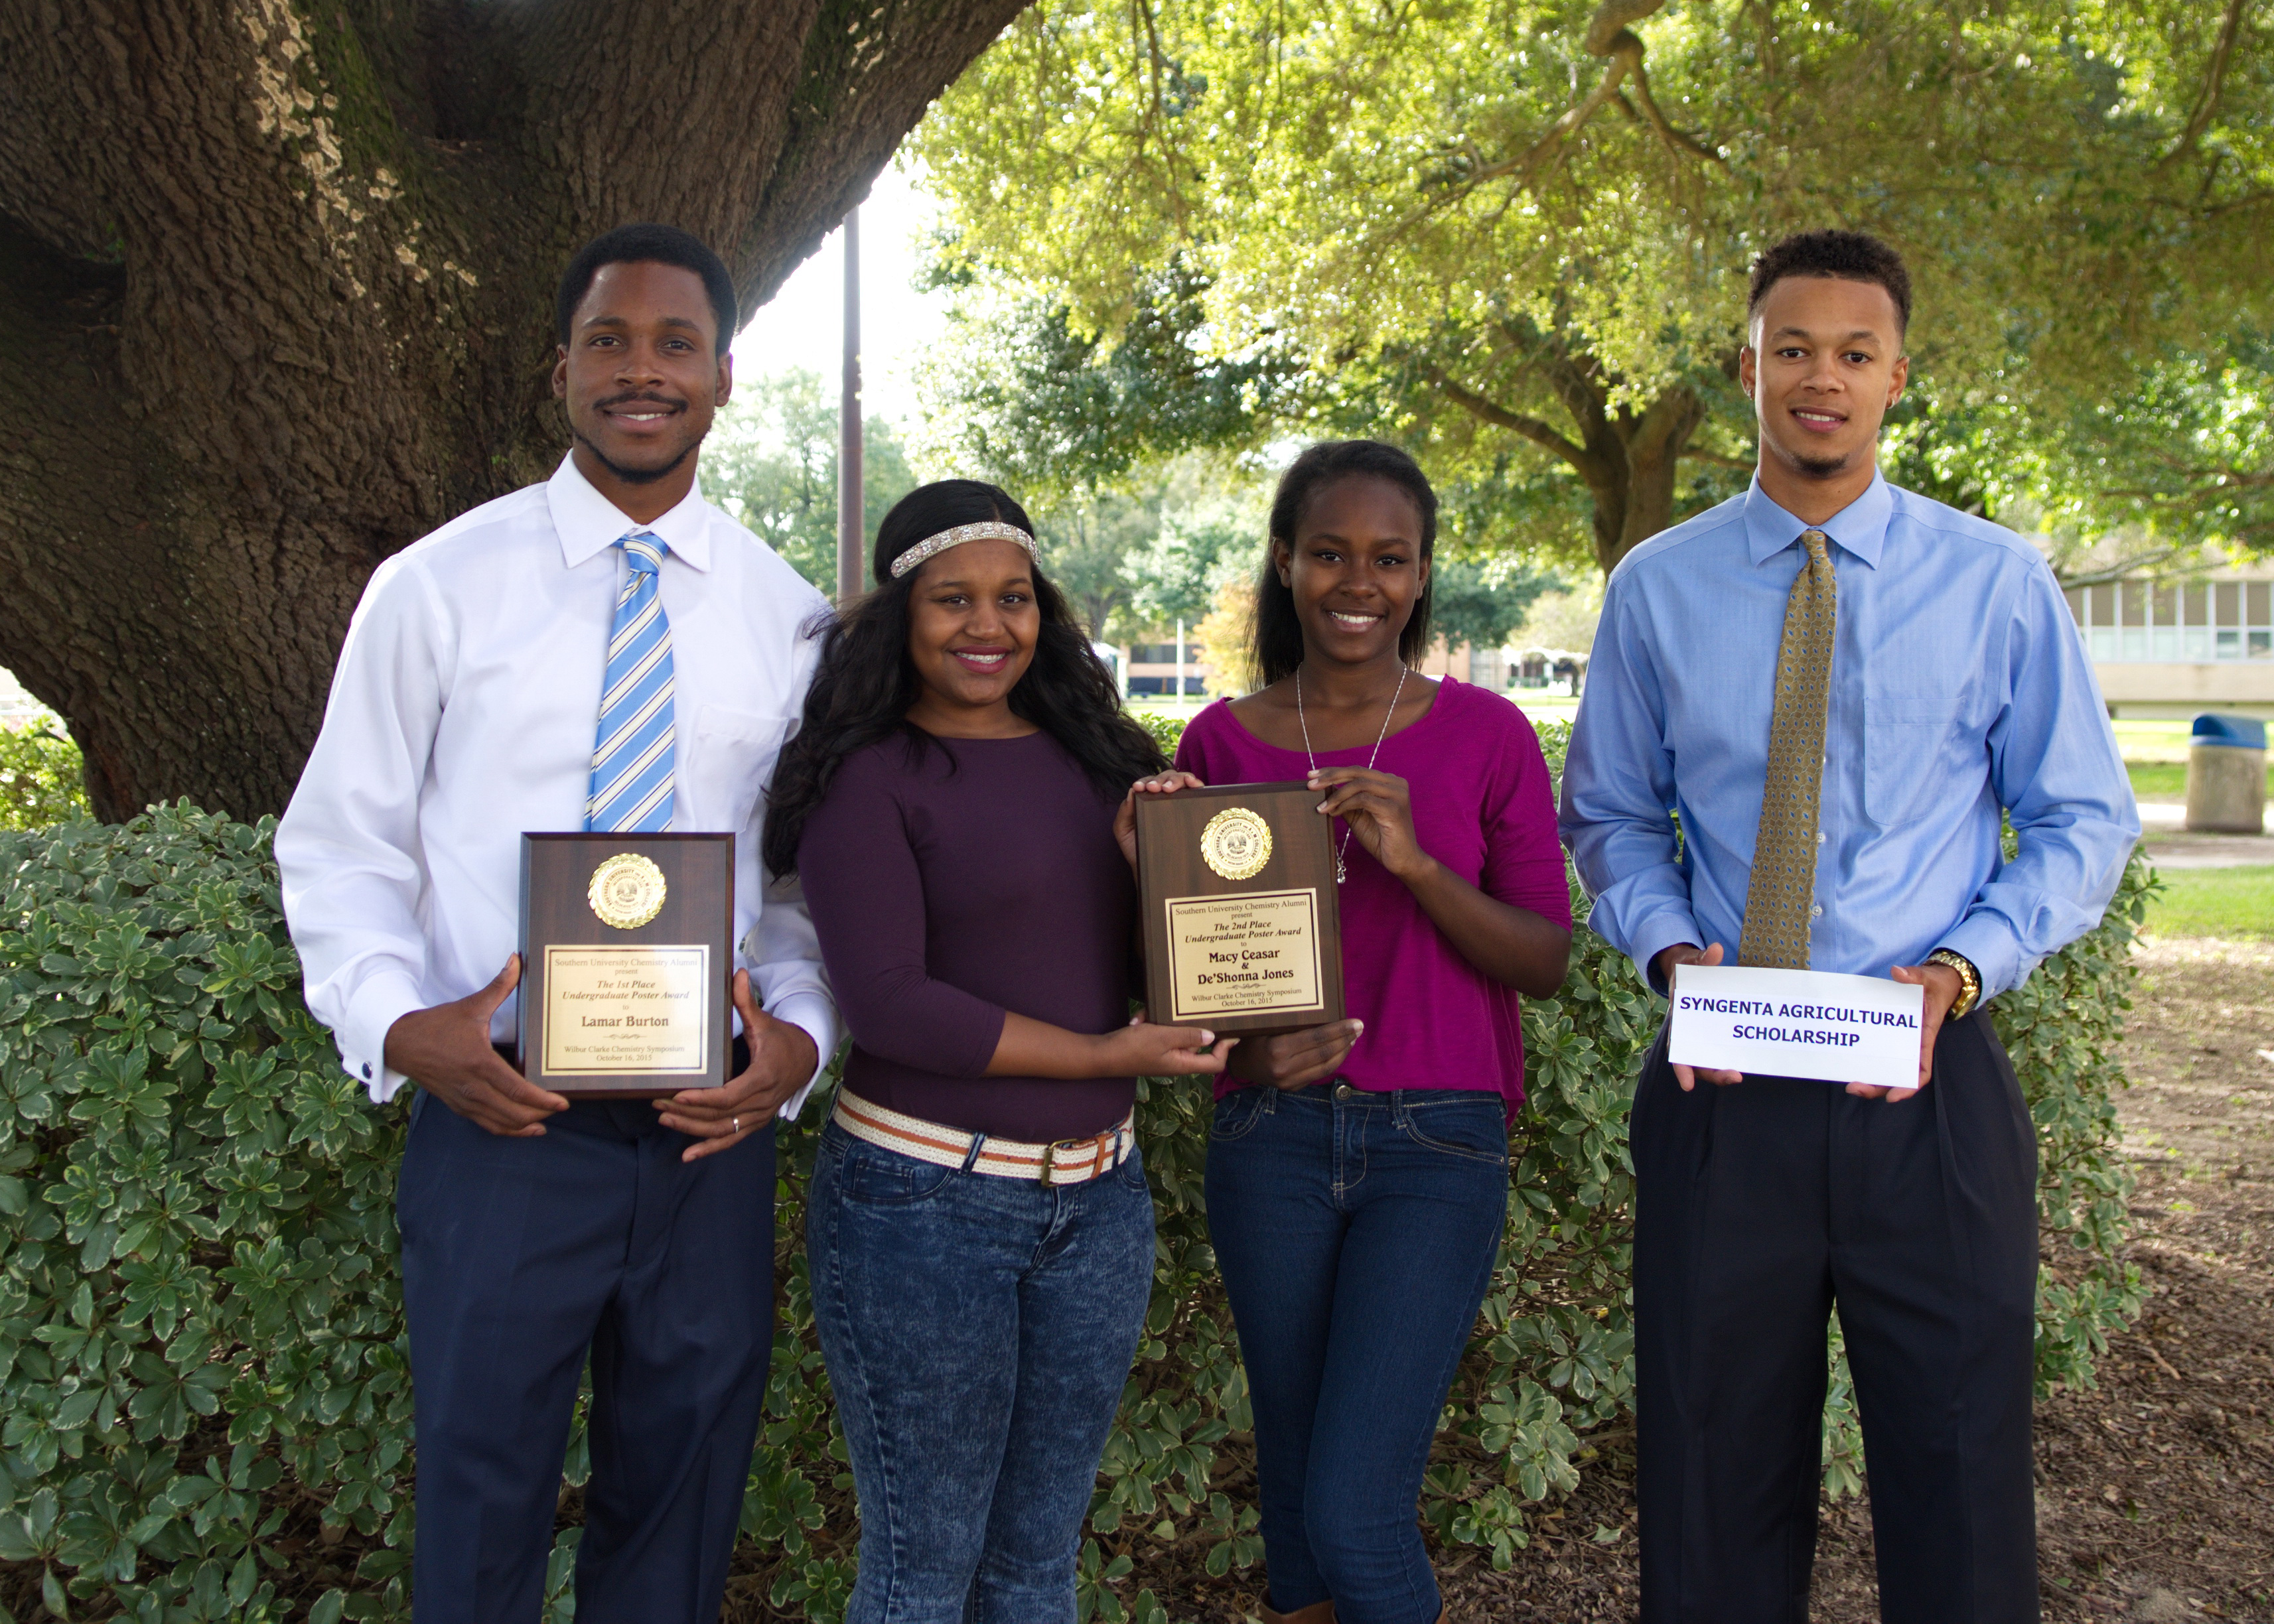 (Pictured Left to Right) Southern University Baton Rouge College of Sciences and Agriculture students Lamar Burton, Macy Caesar, De'Shonna Jones, and Alonzo Harris Jr.